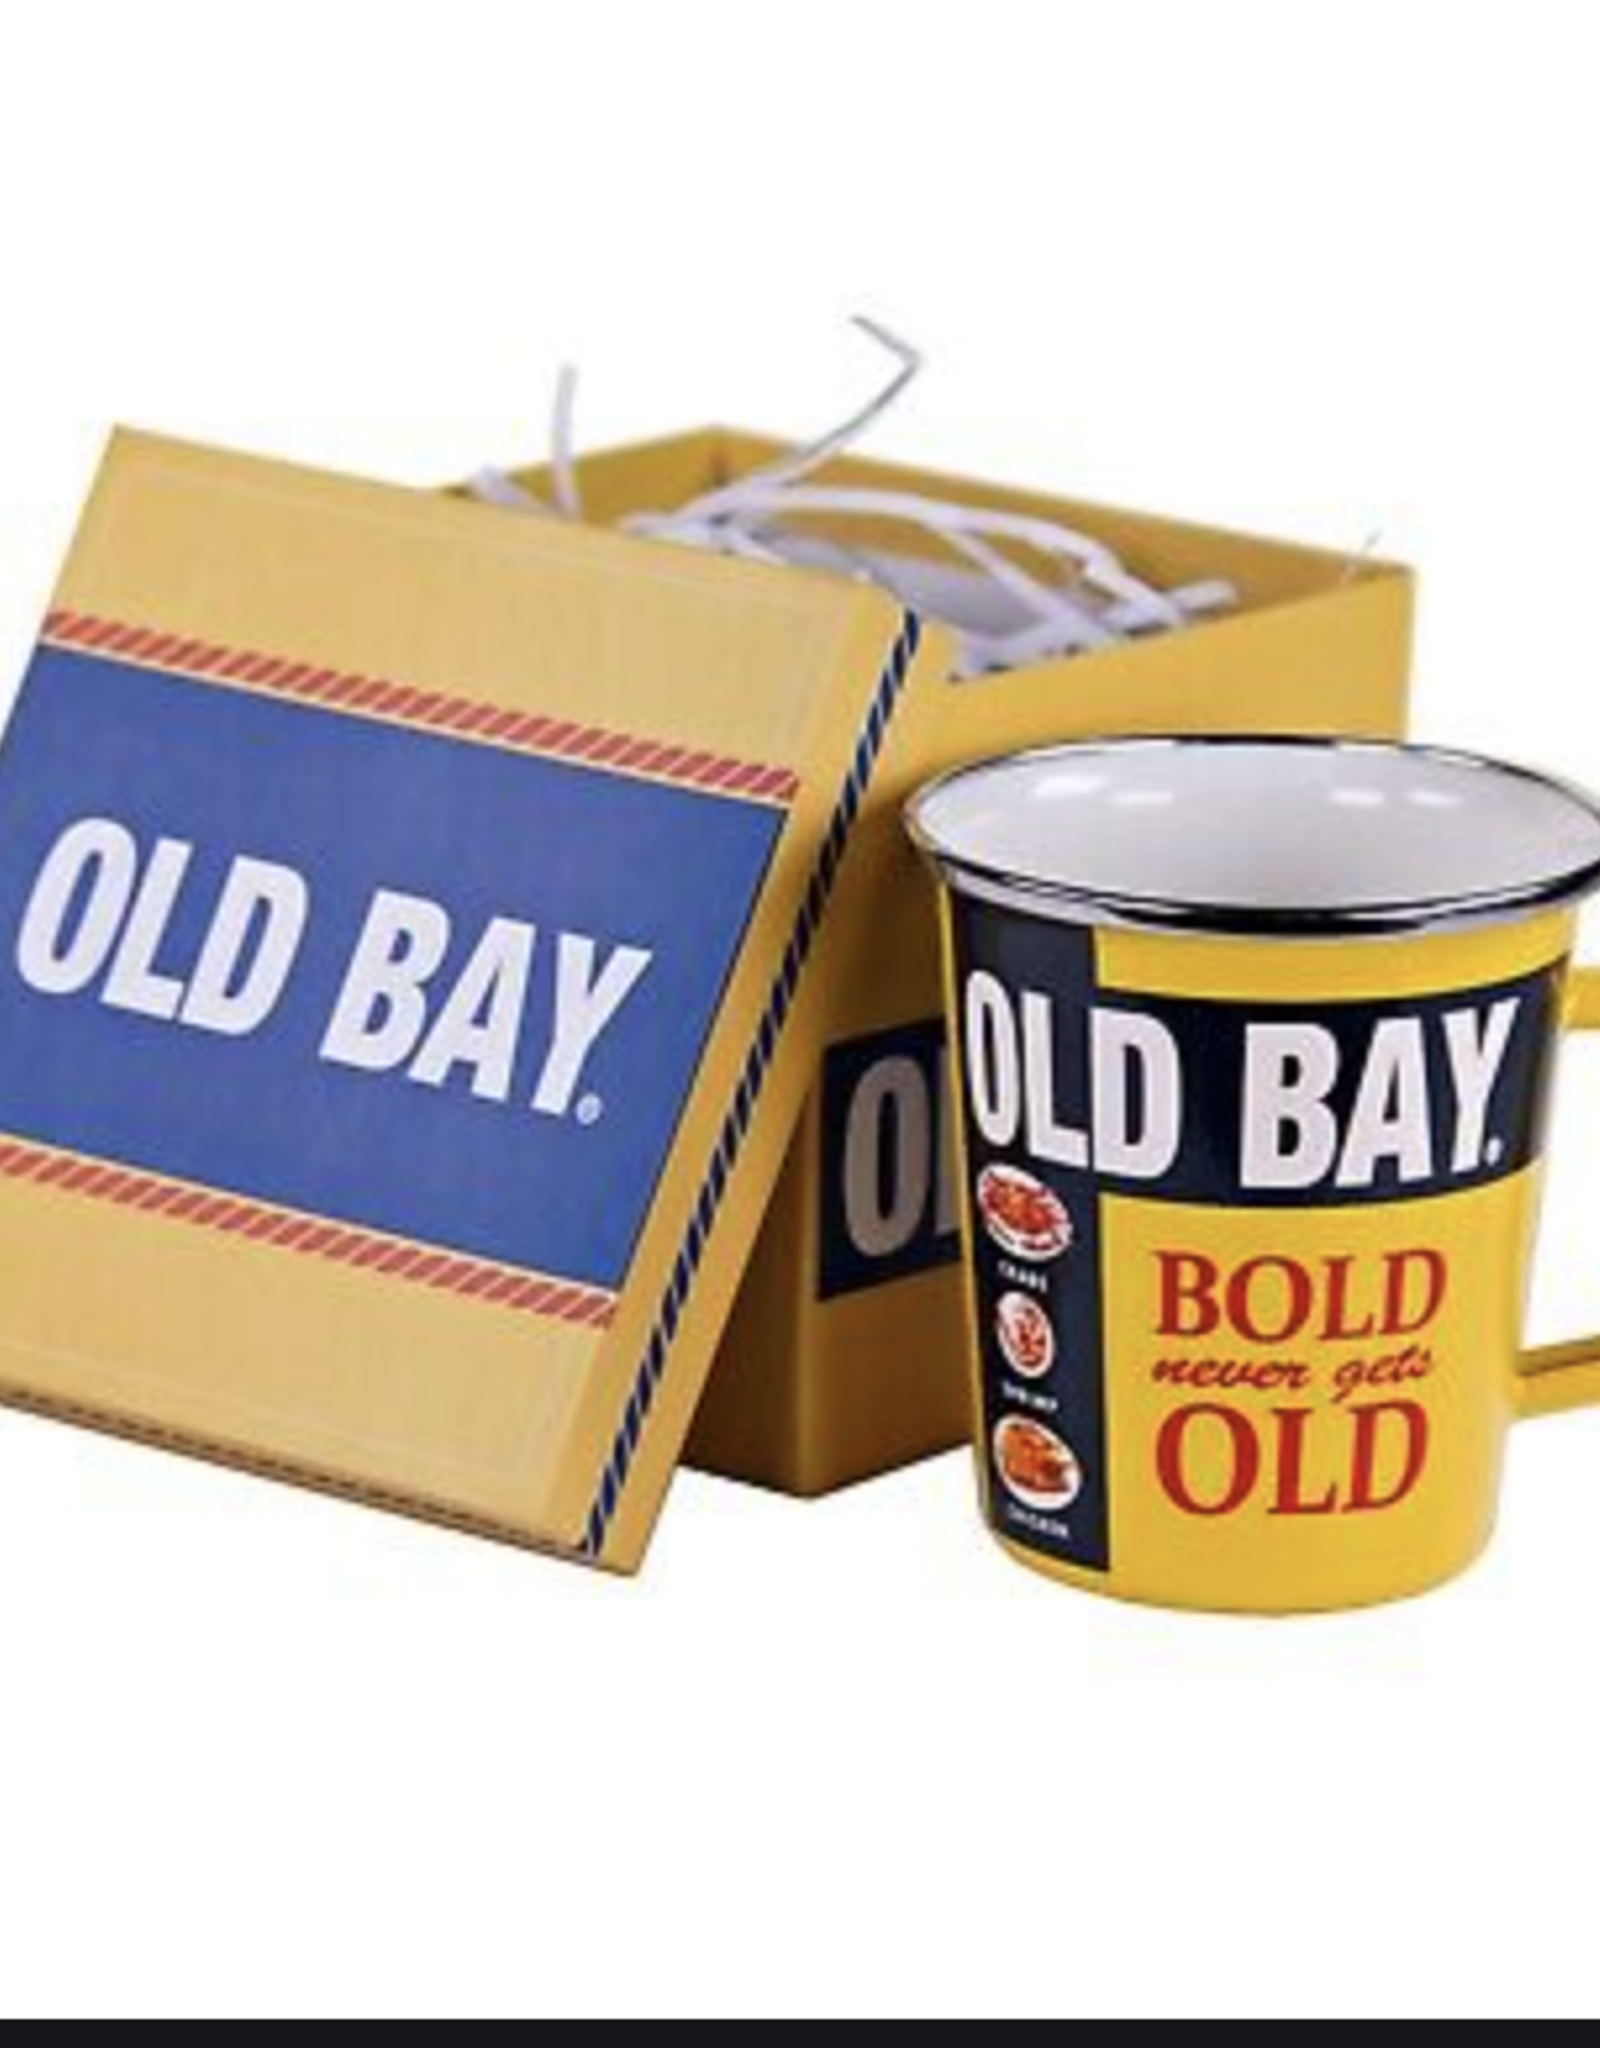 Old Bay Mug Gift Box